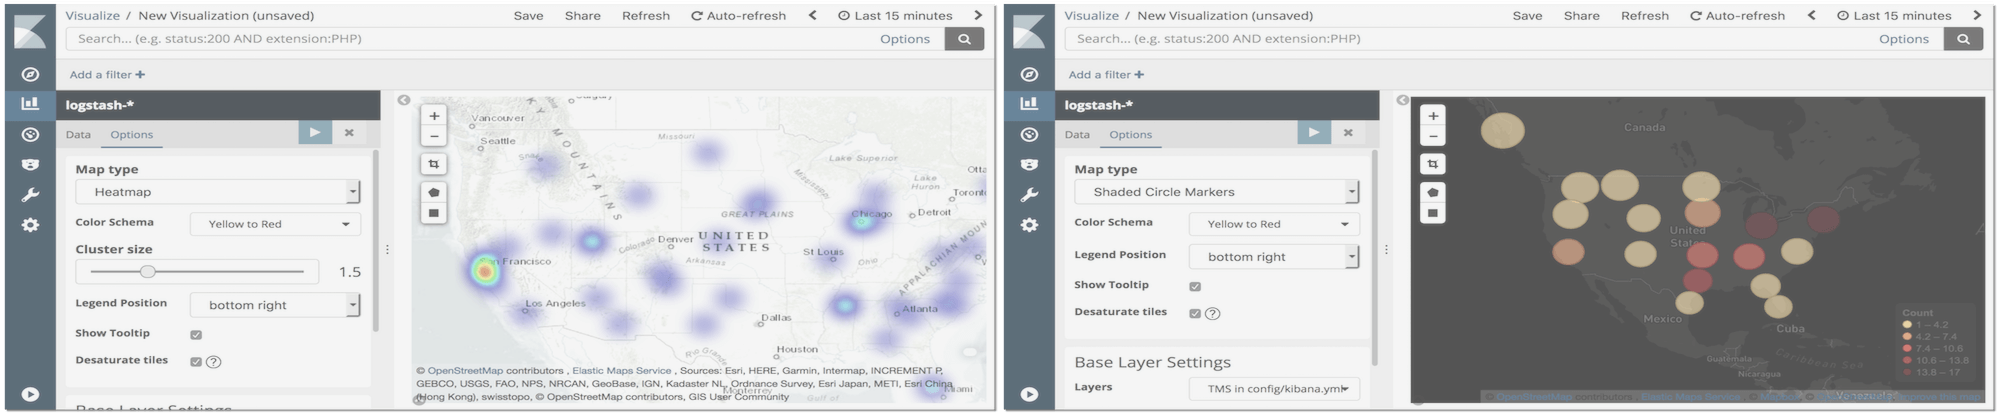 Custom basemaps for region and coordinate maps in Kibana | Elastic Blog